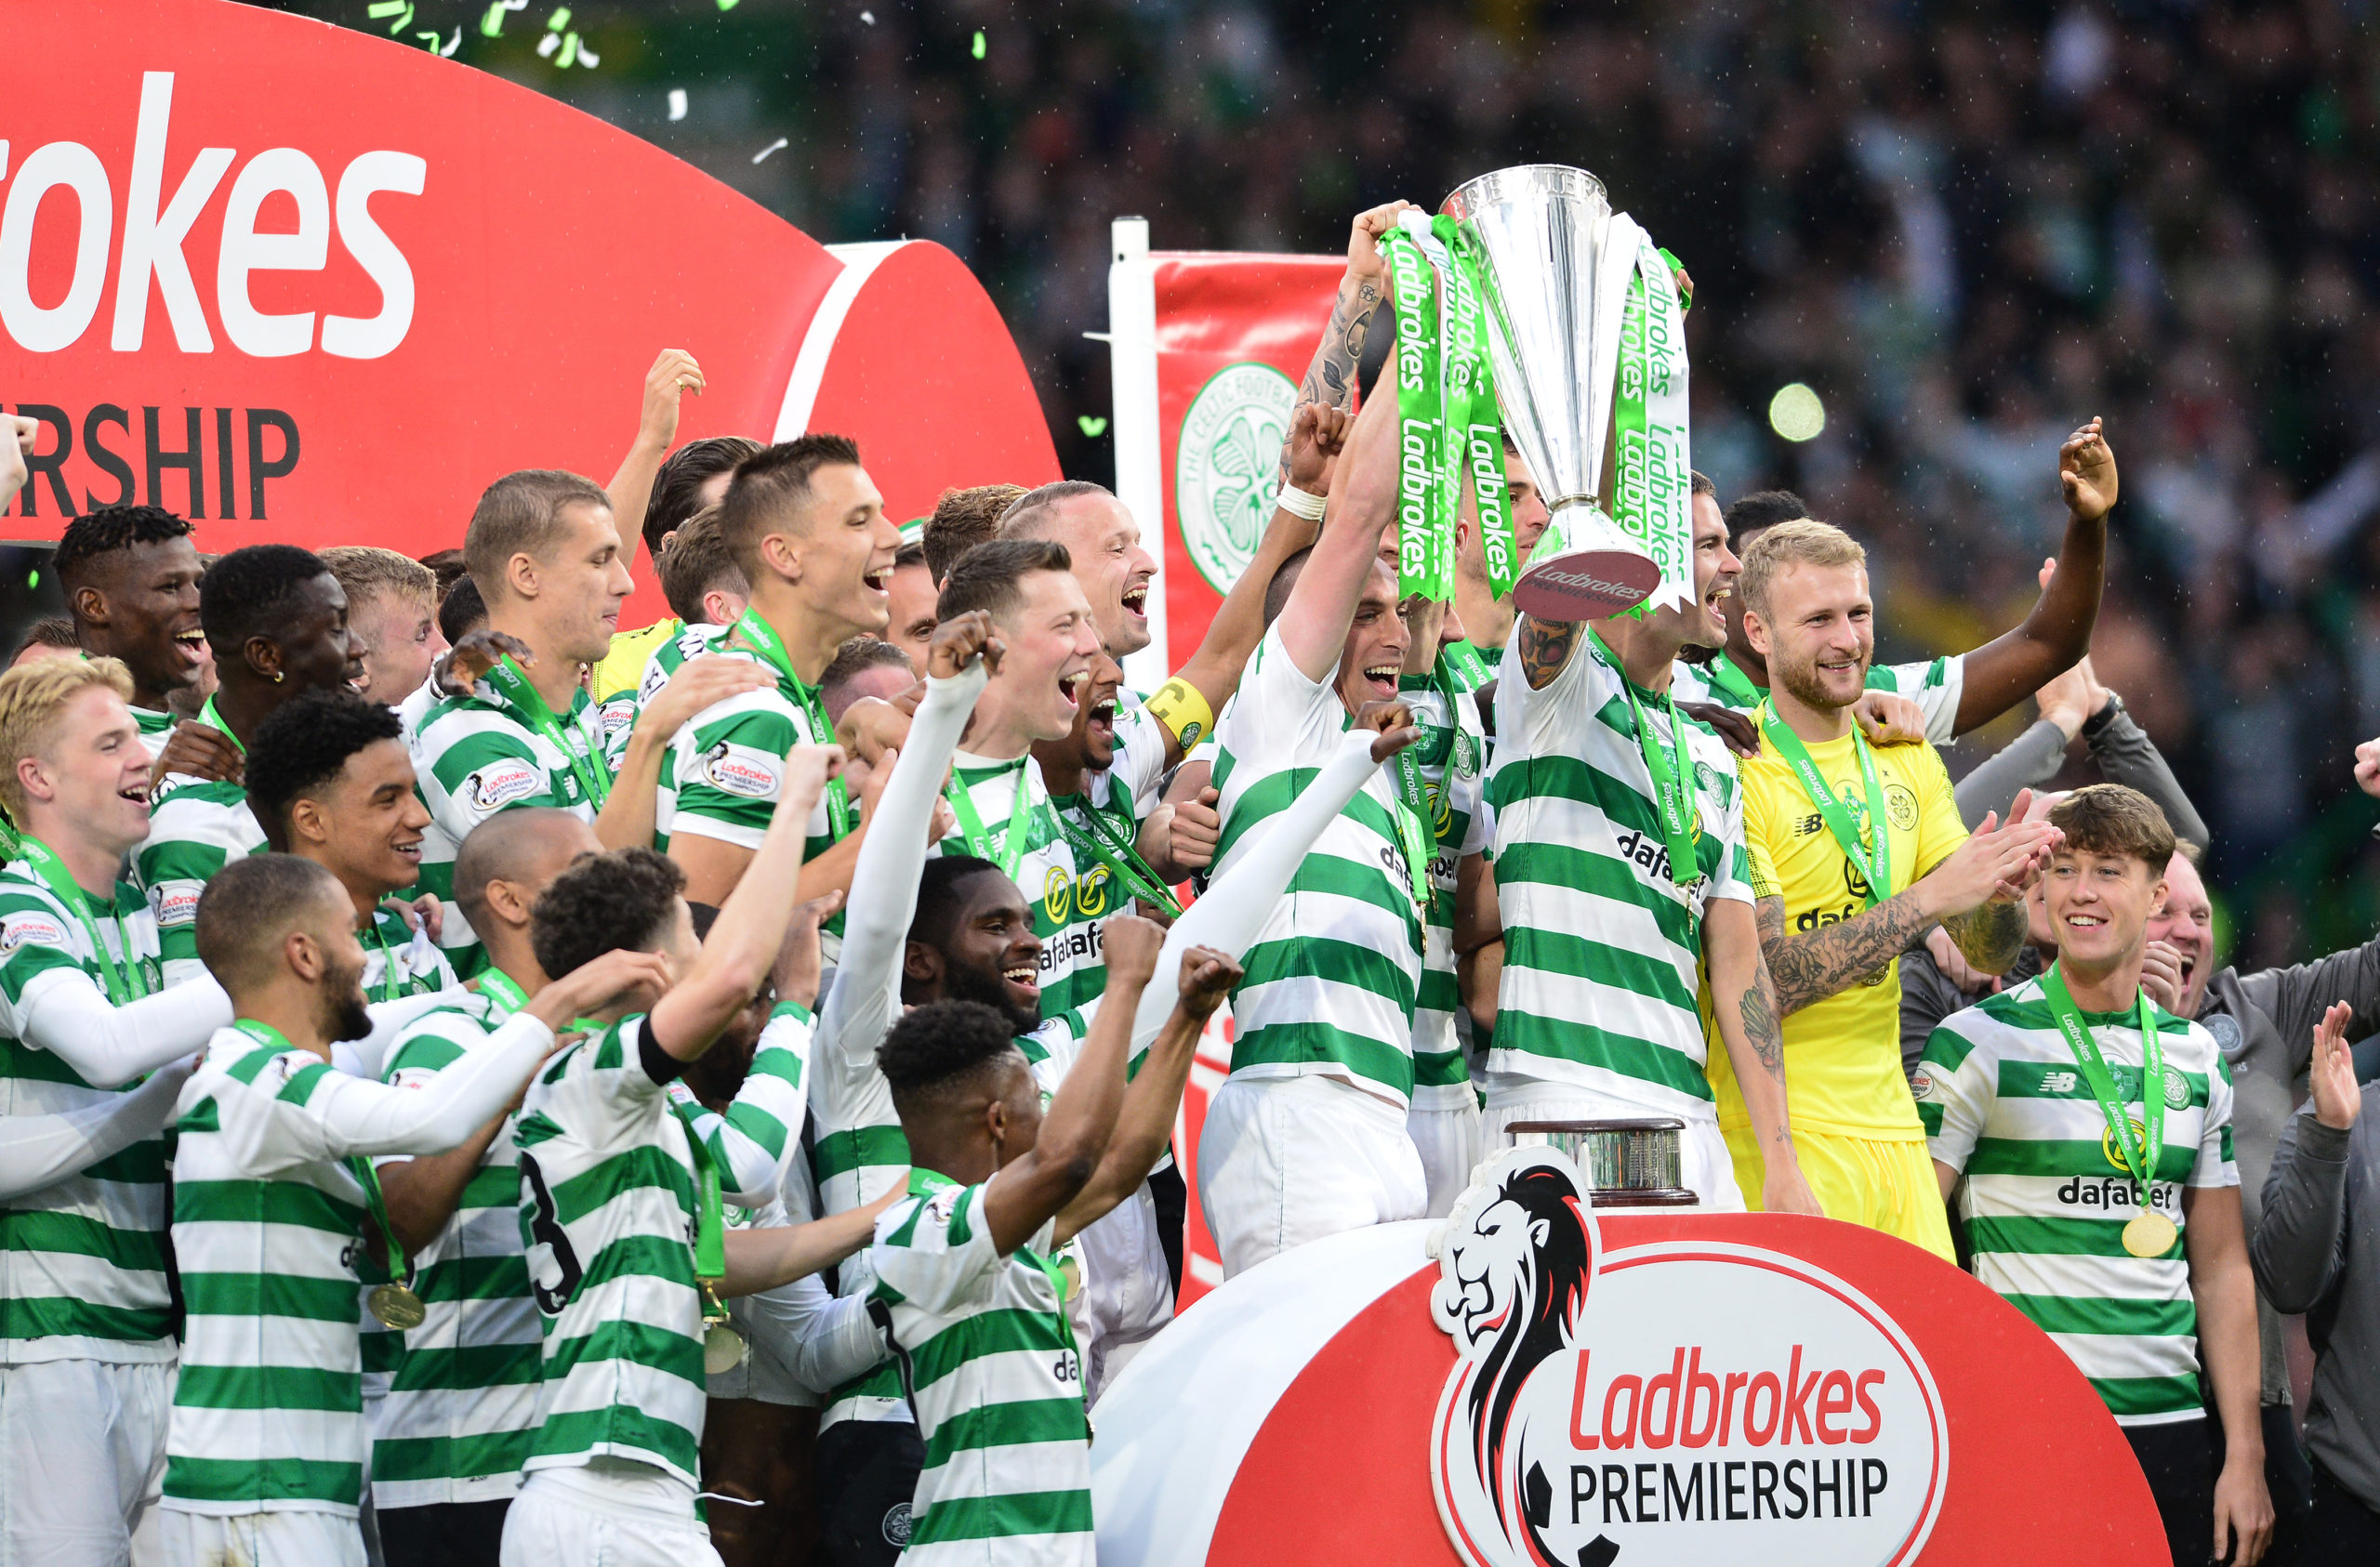 Celtic lift the league title in 2019